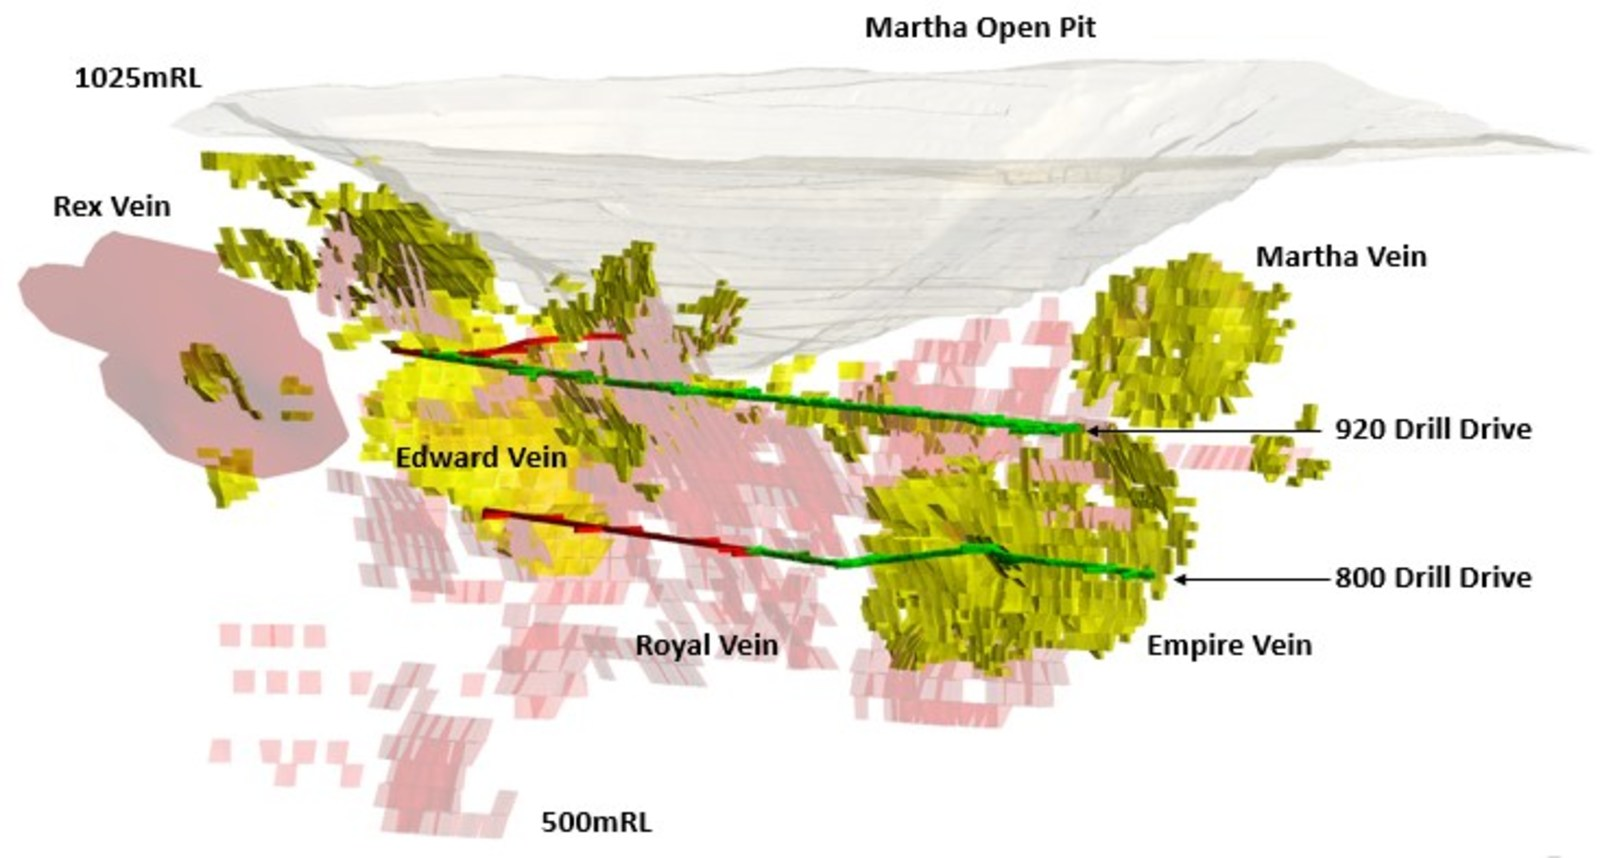 Figure 1 – Long Sectional Oblique View showing Martha Open Pit, Martha Underground, Main Target Areas and Current Martha Underground Resource Areas.